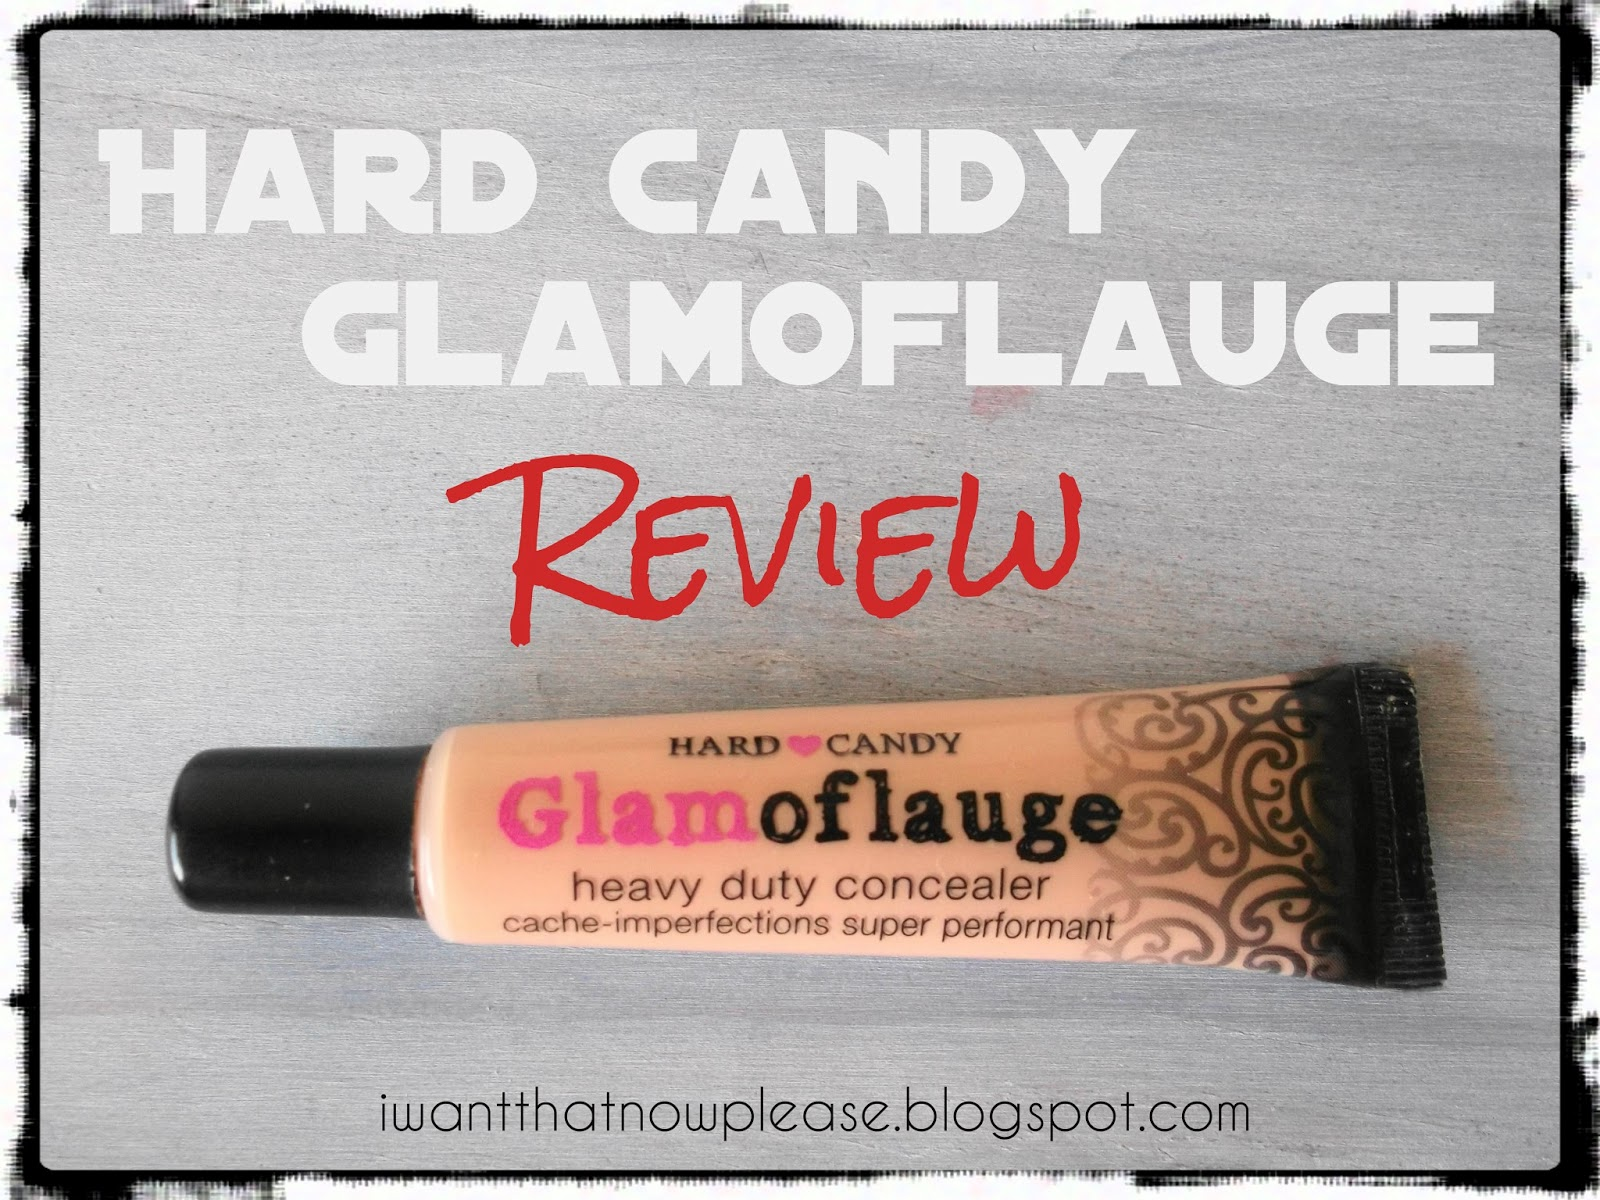 She's a Beaut: Hard Candy Glamoflauge Heavy Duty Concealer in ...